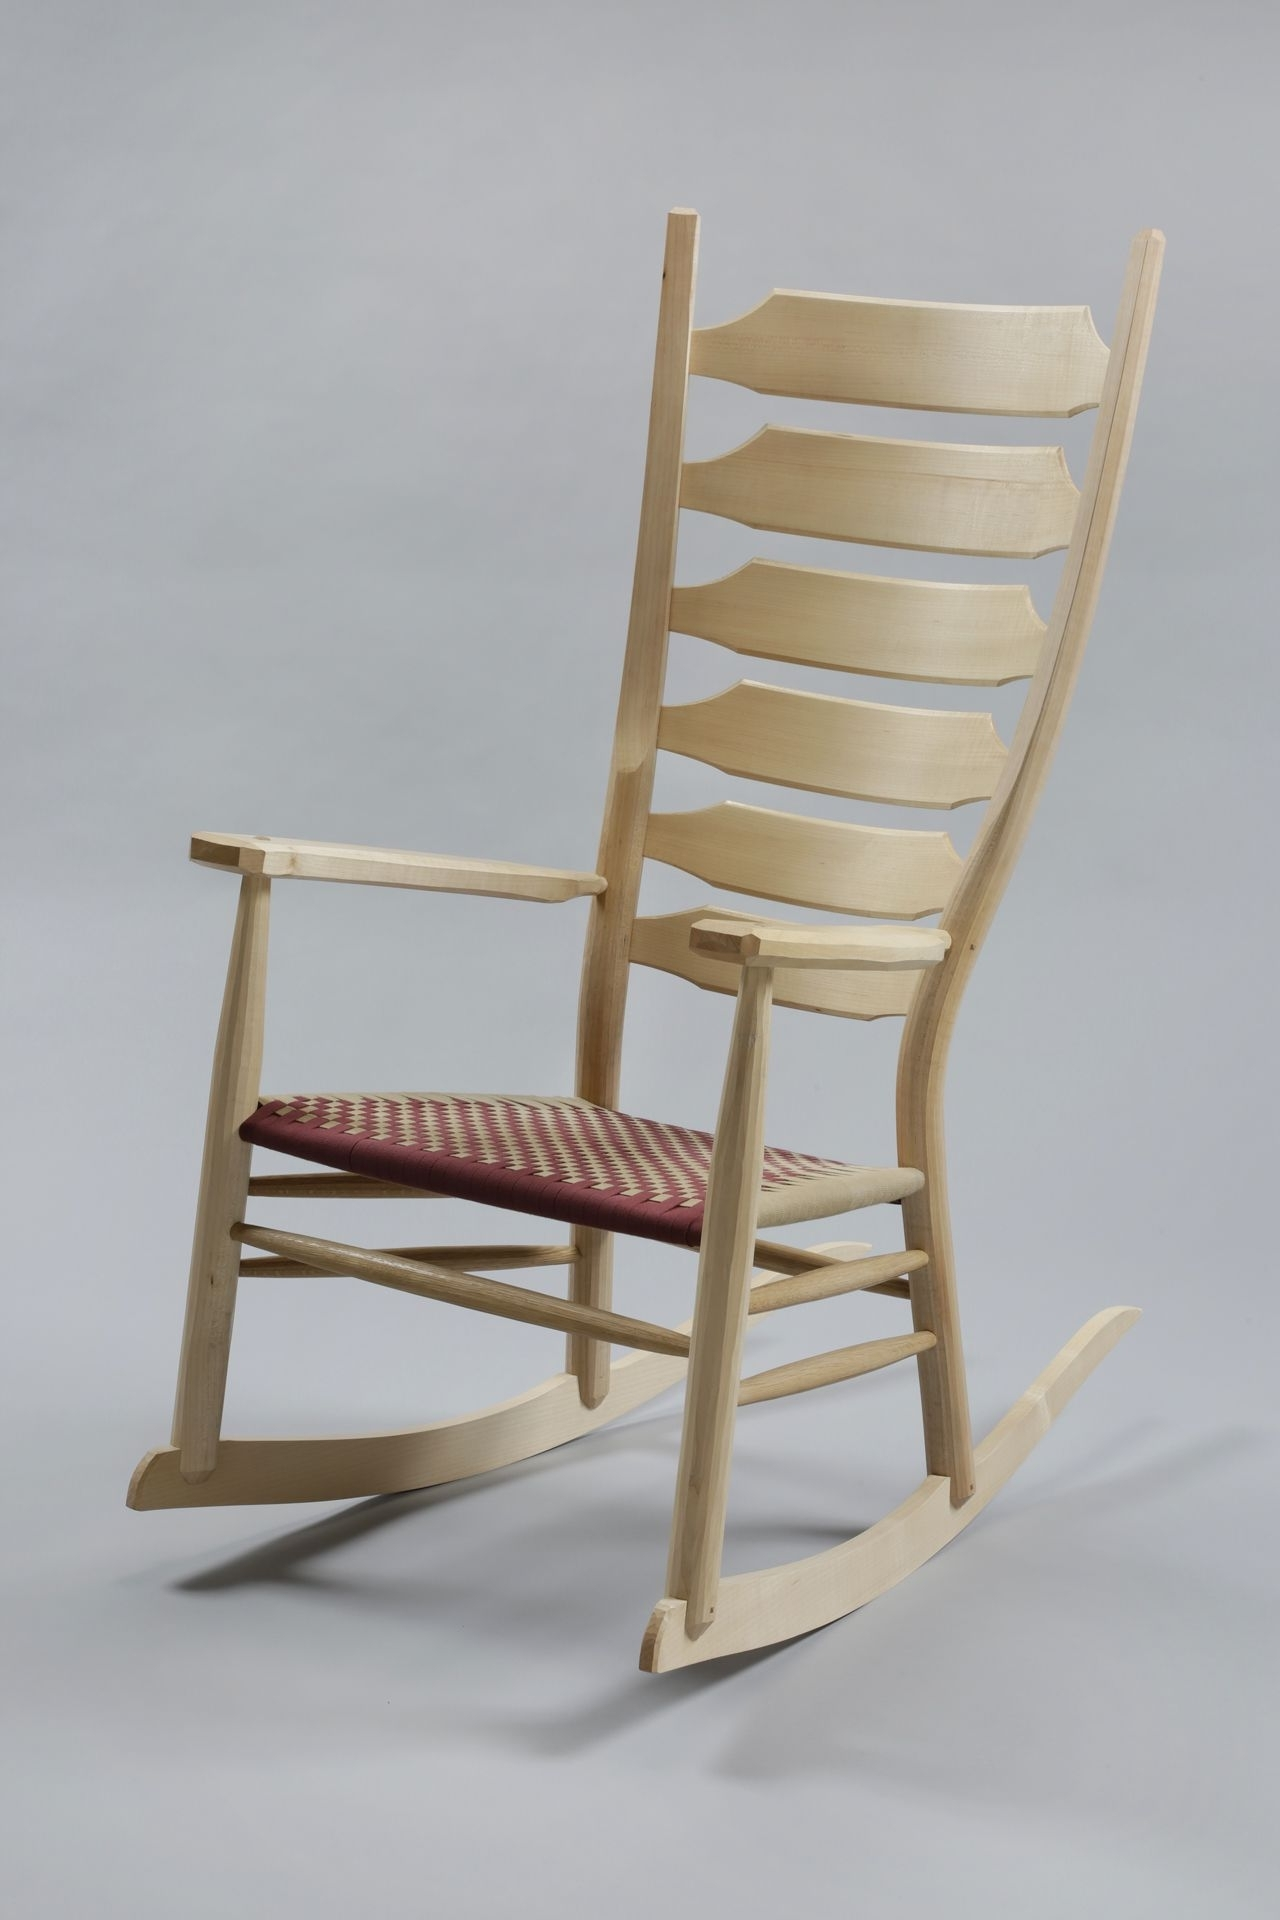 2019 Our Greenwood Rocking Chair Is A Classic Post And Rung Chair Grown In Rocking Chairs With Lumbar Support (View 7 of 20)